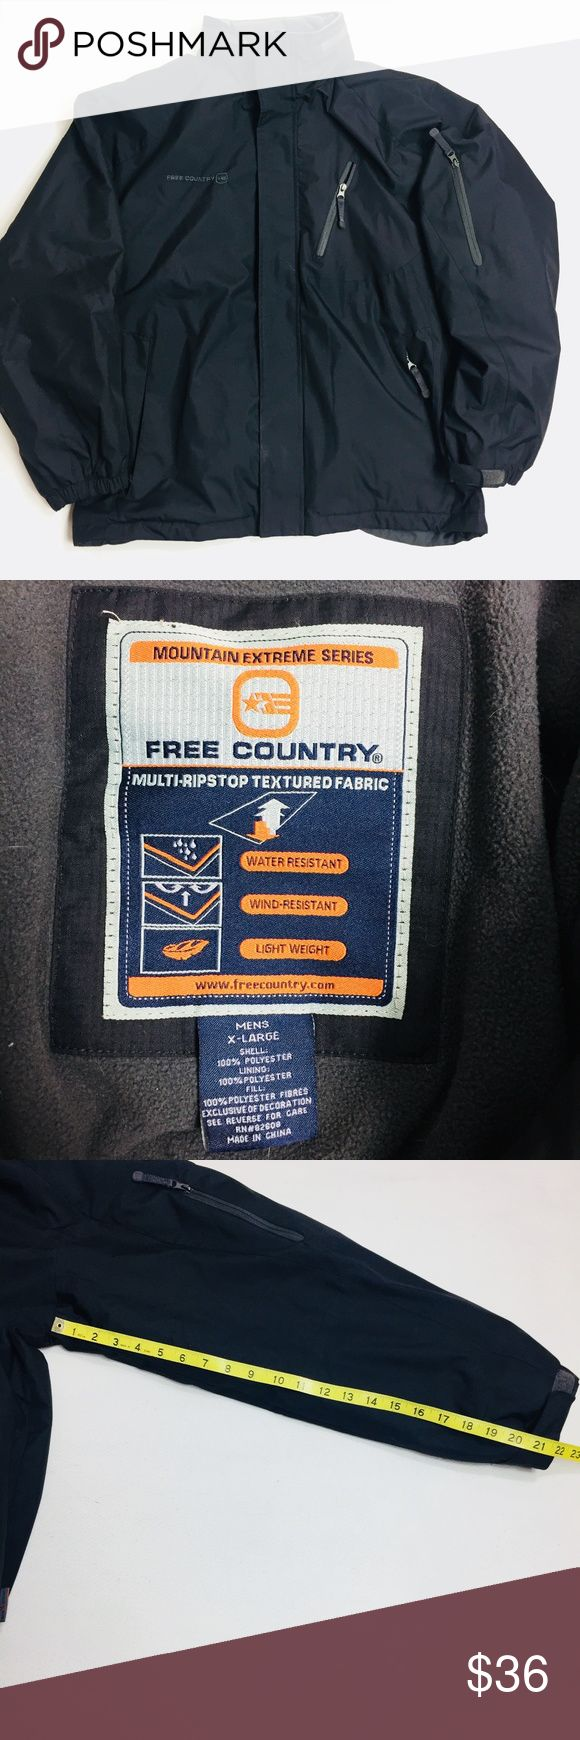 "Free Country Ski Jacket 3-in-1 Multi-Ripstop Black Free Country Mens Ski Jacket 3-in-1 Multi-Ripstop  Hooded Lined Winter XL Black  in gently worn condition  A0110kt10  Condition:Pre-owned ""very good"" Free Country Jackets & Coats Ski & Snowboard"